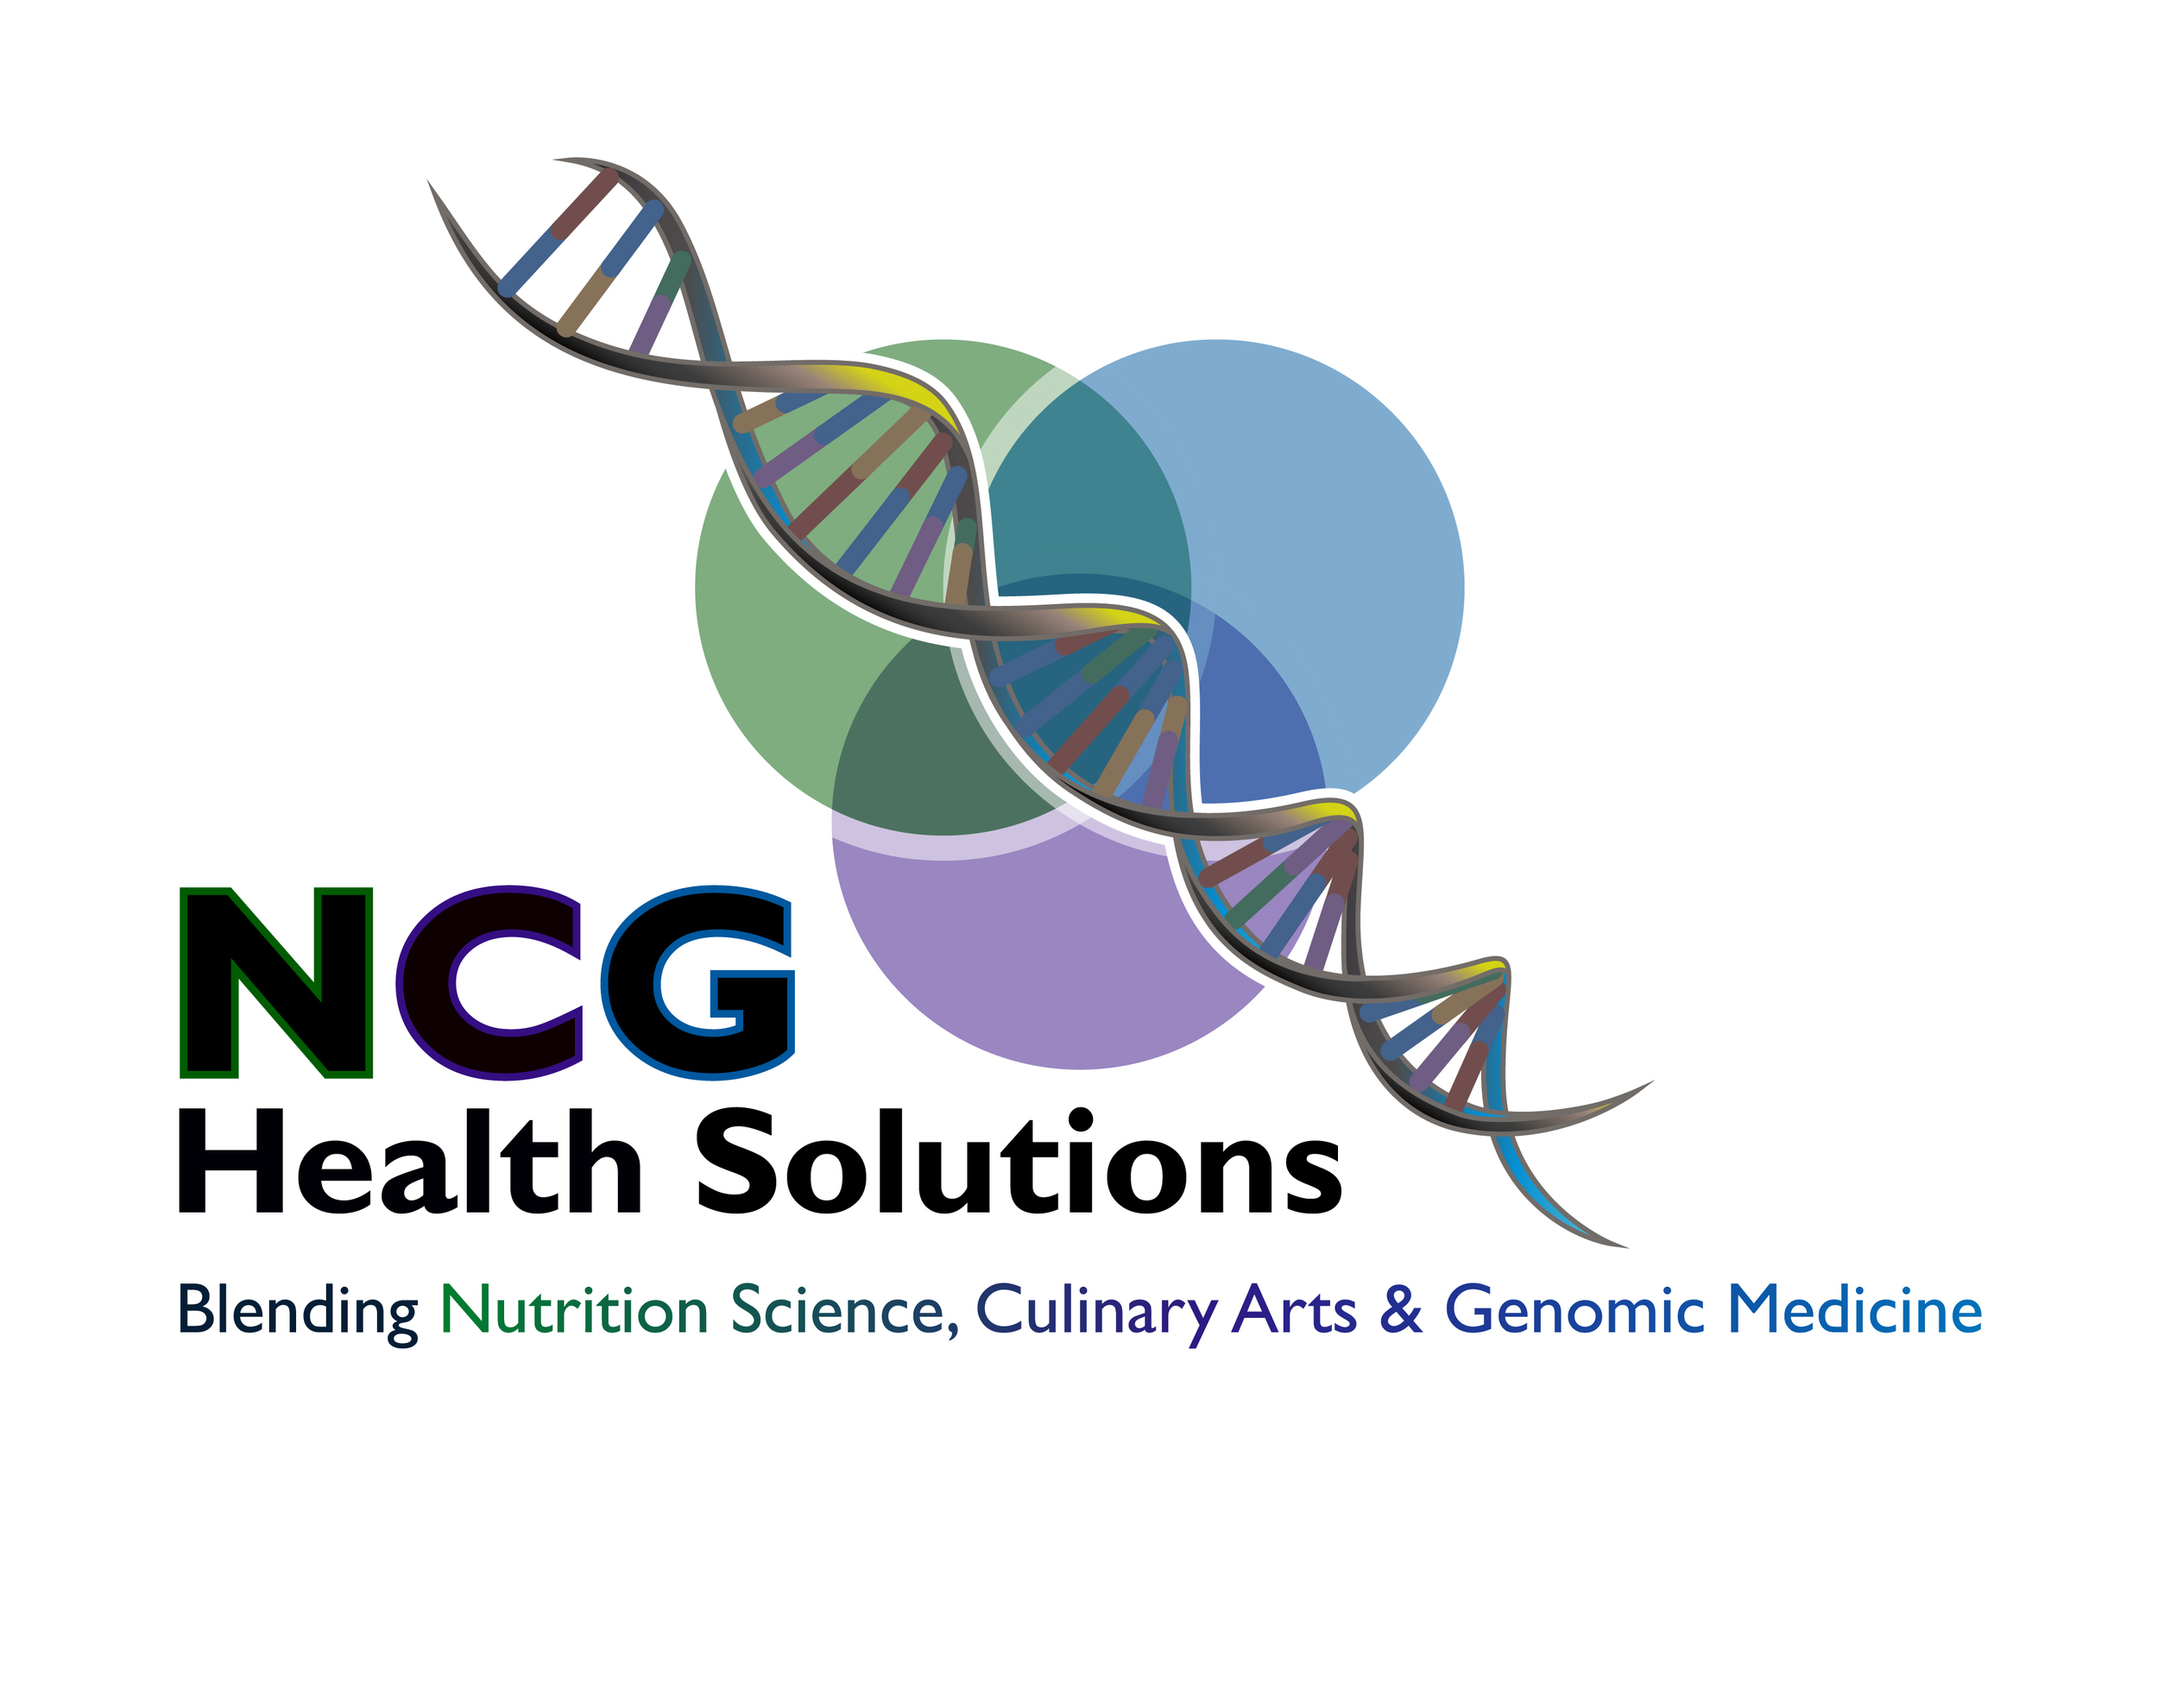 IN PARTNERSHIP WITH NCG HEALTH SOLUTIONS